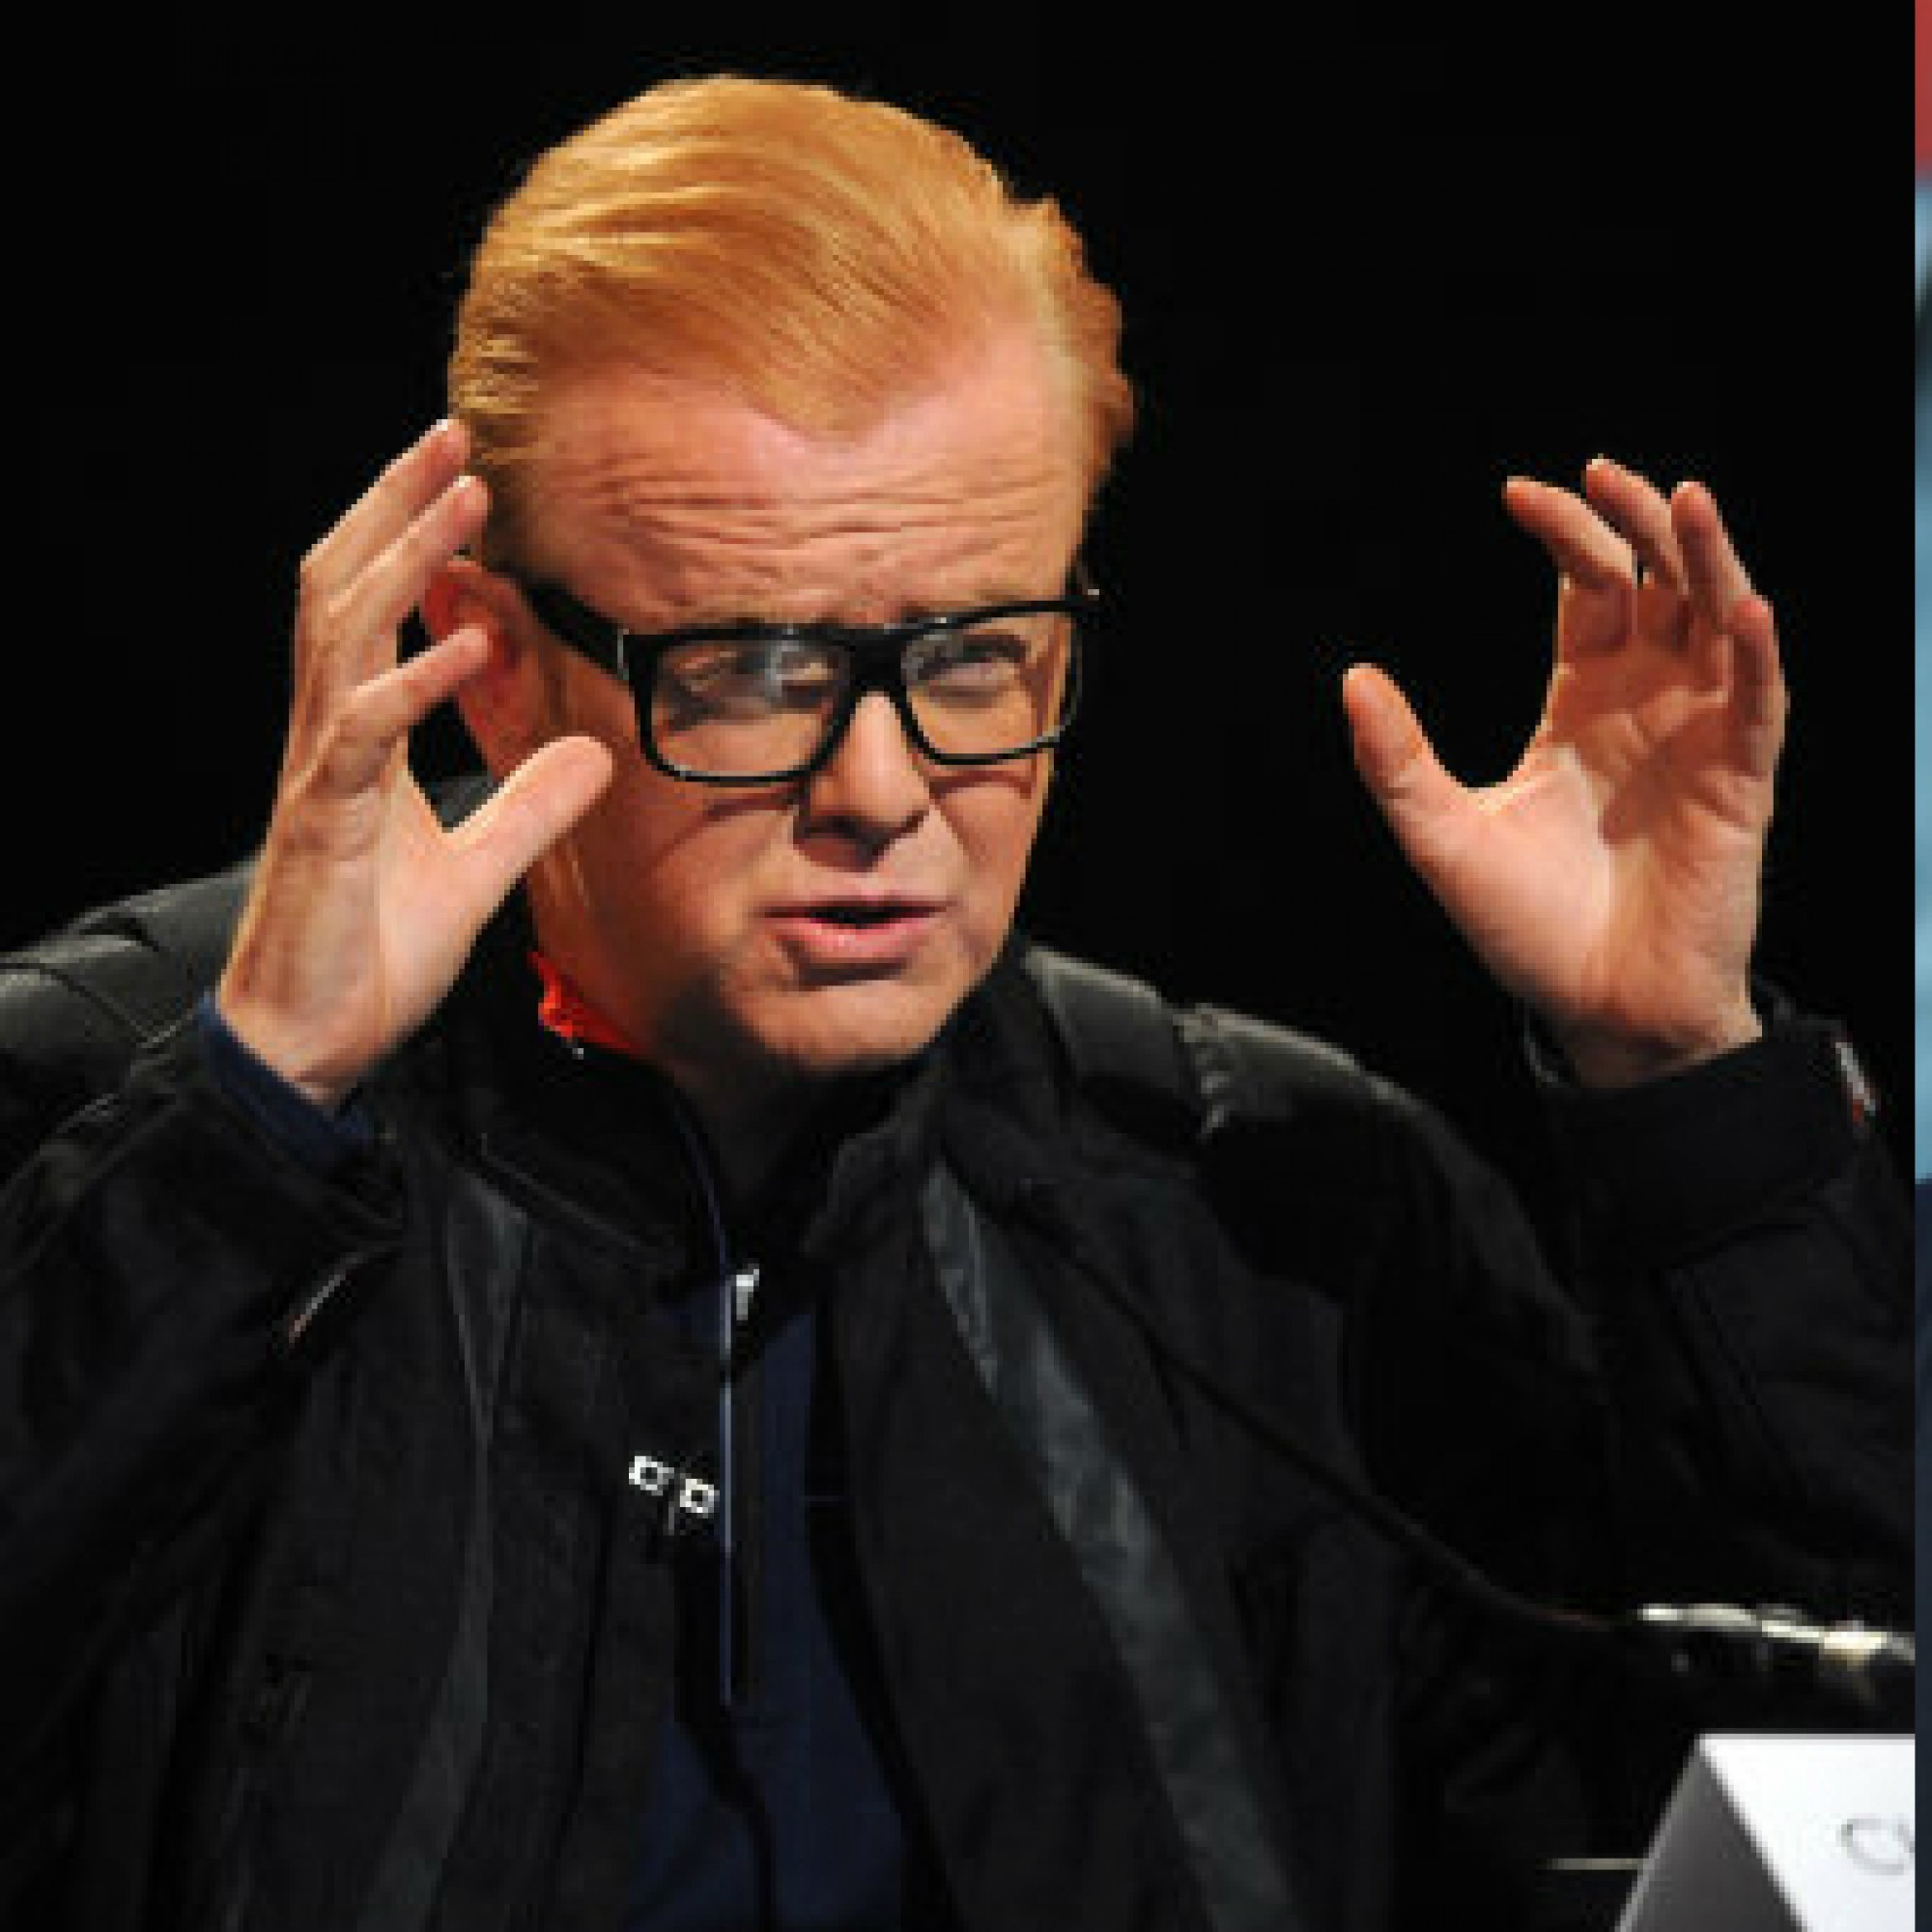 People are tweeting the wrong Chris Evans giving out about Top Gear